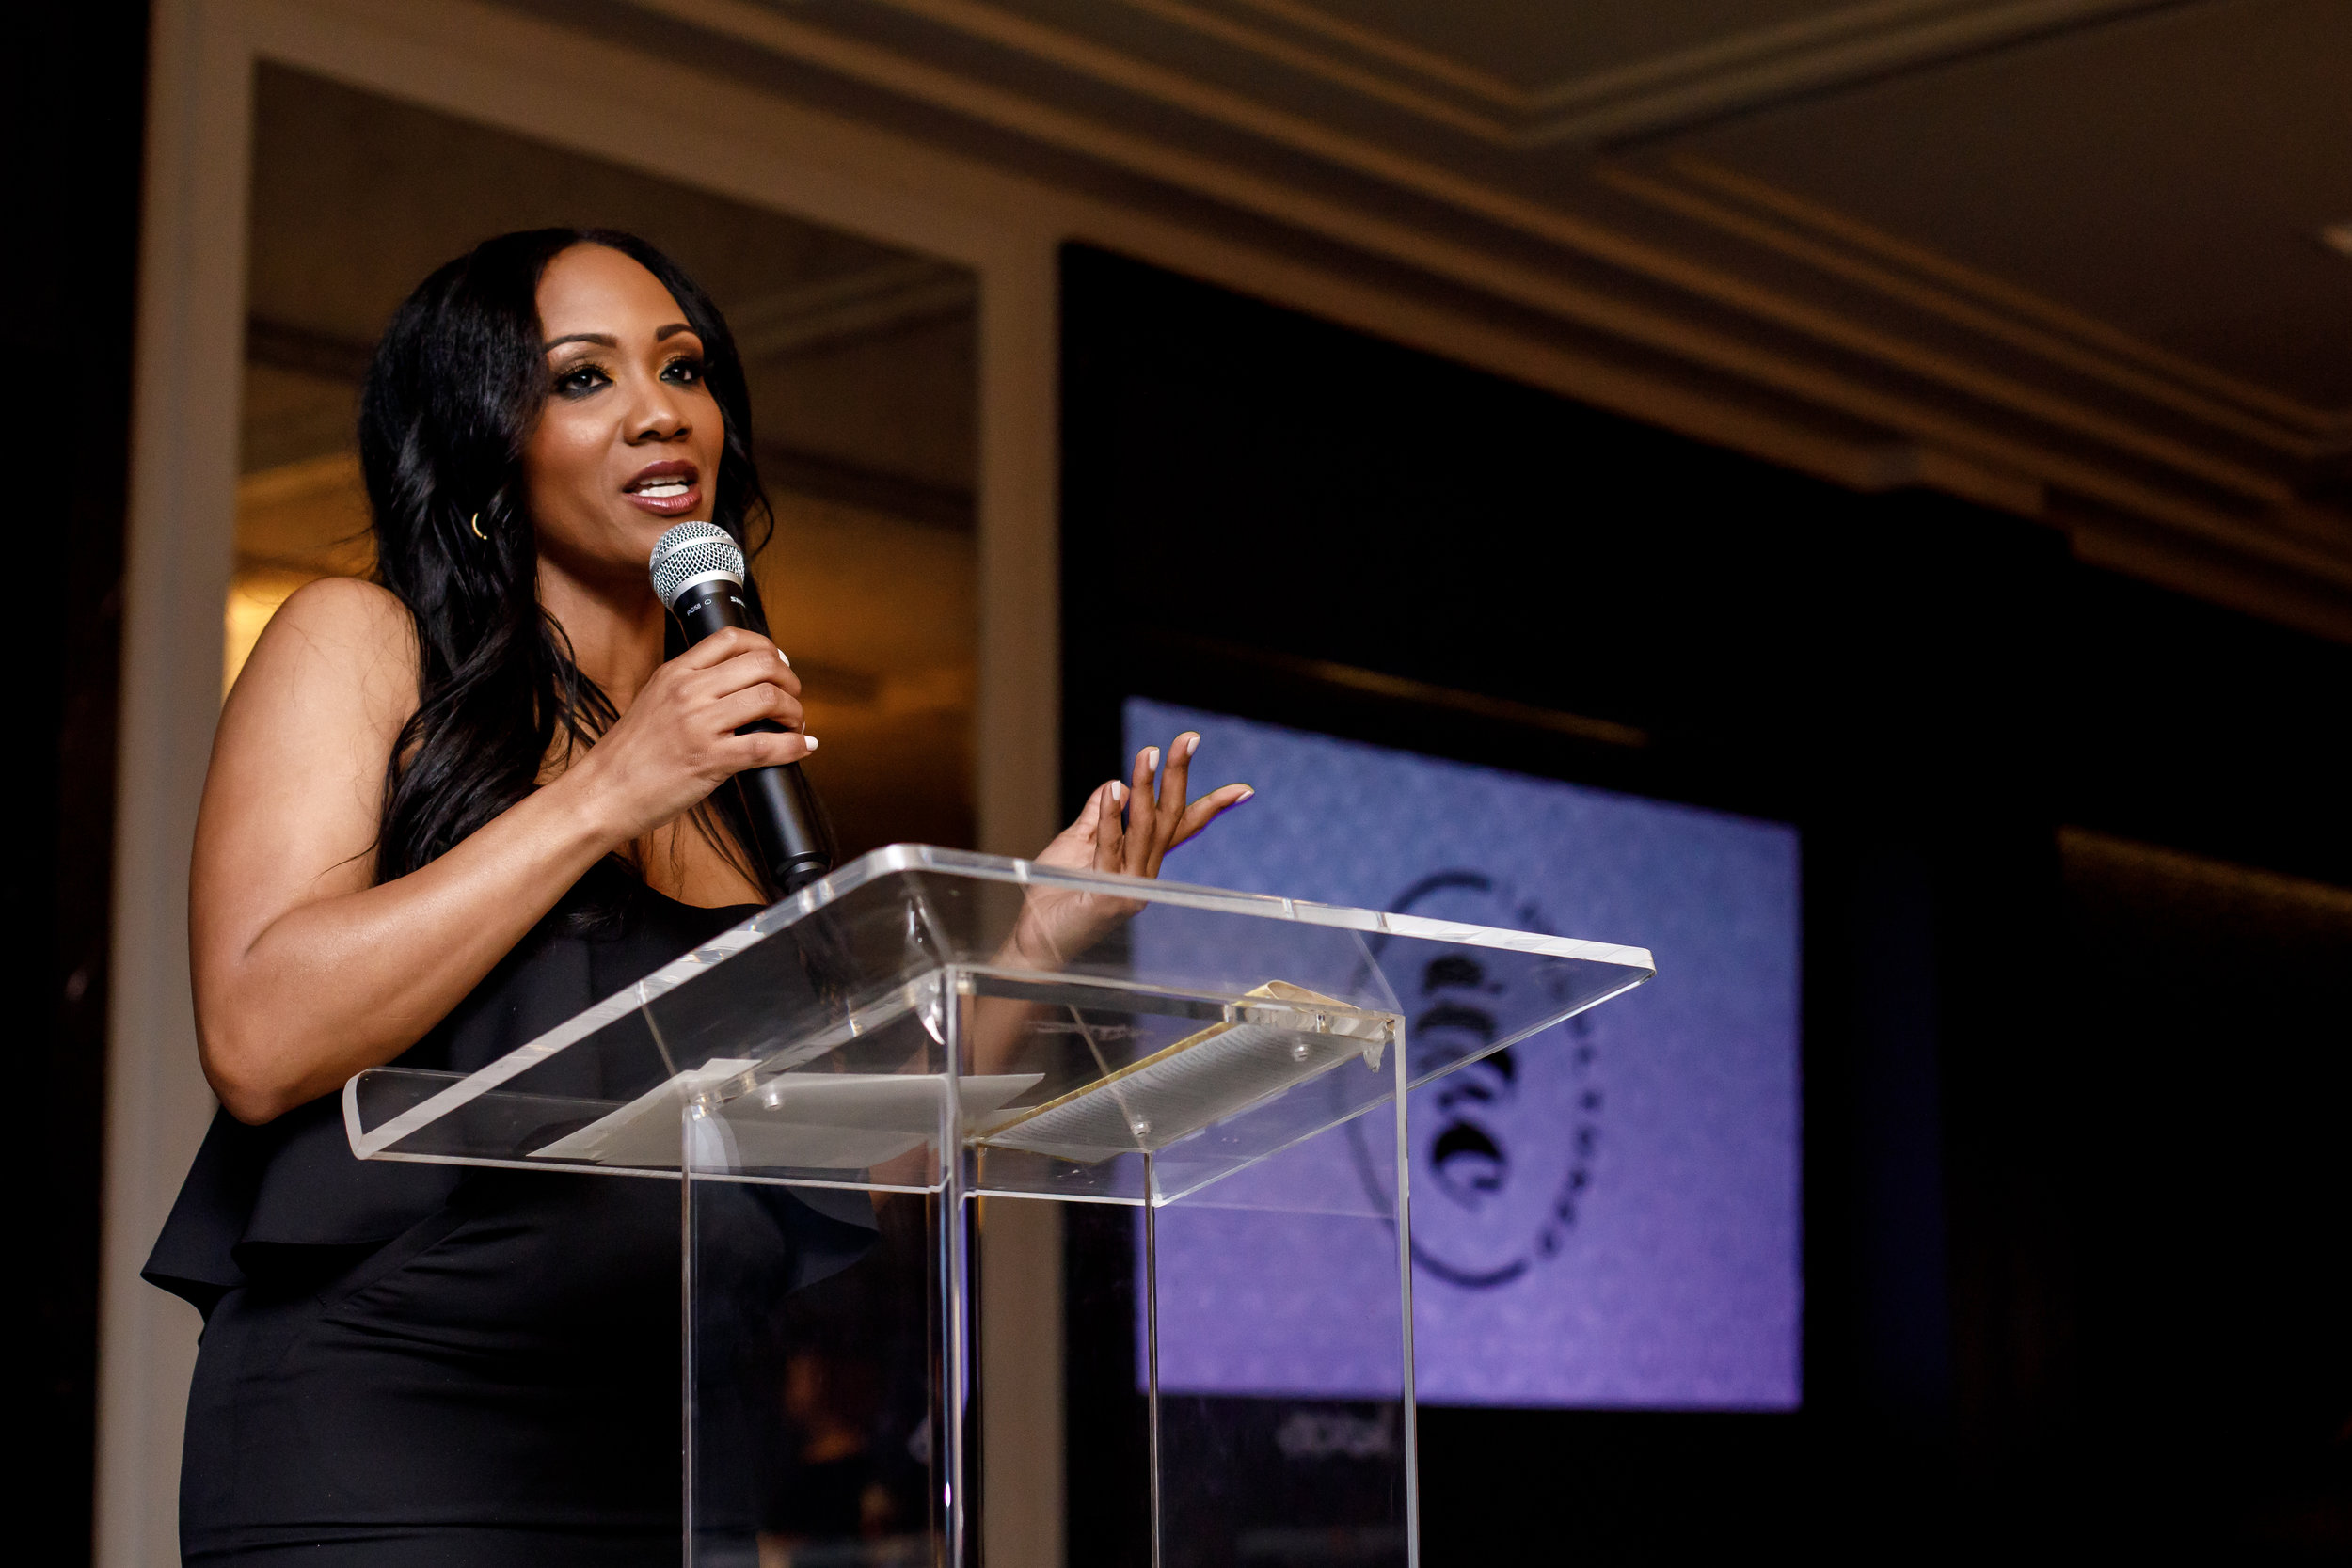 Tiffany Withers, Gala Host